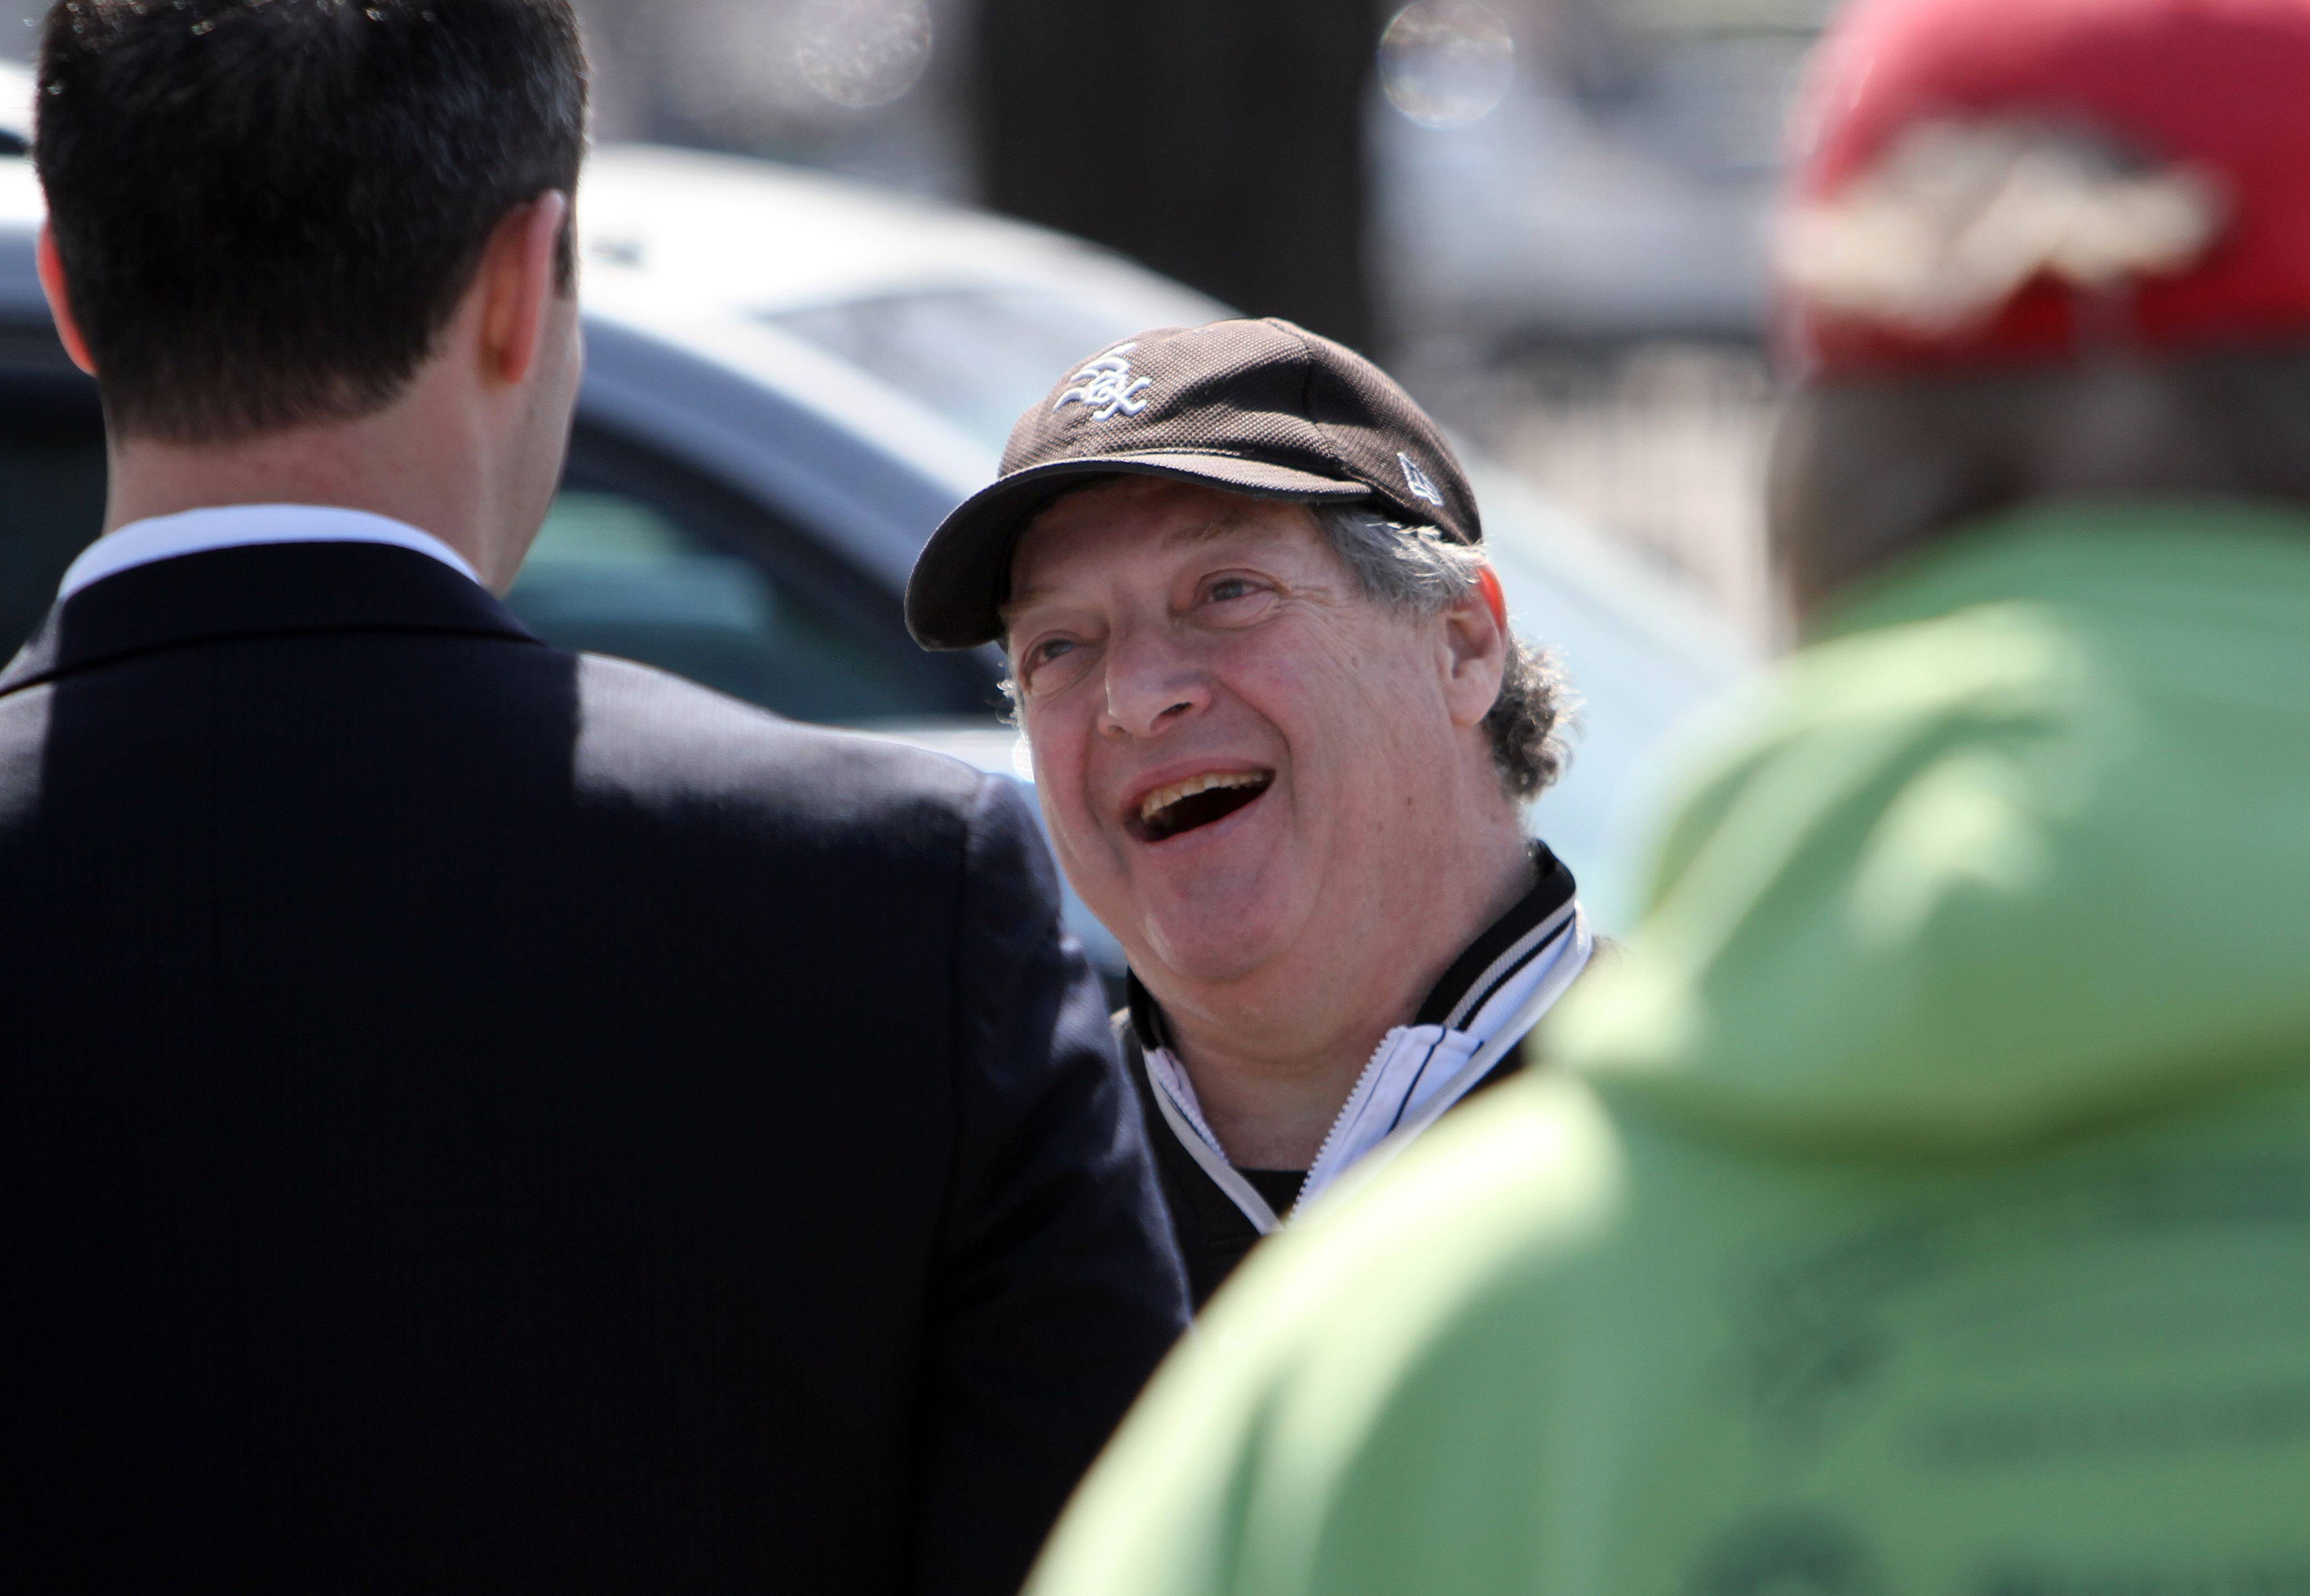 Howard Jaffe of Libertyville attends his 52nd consecutive White Sox home opener Monday at U.S. Cellular Field.